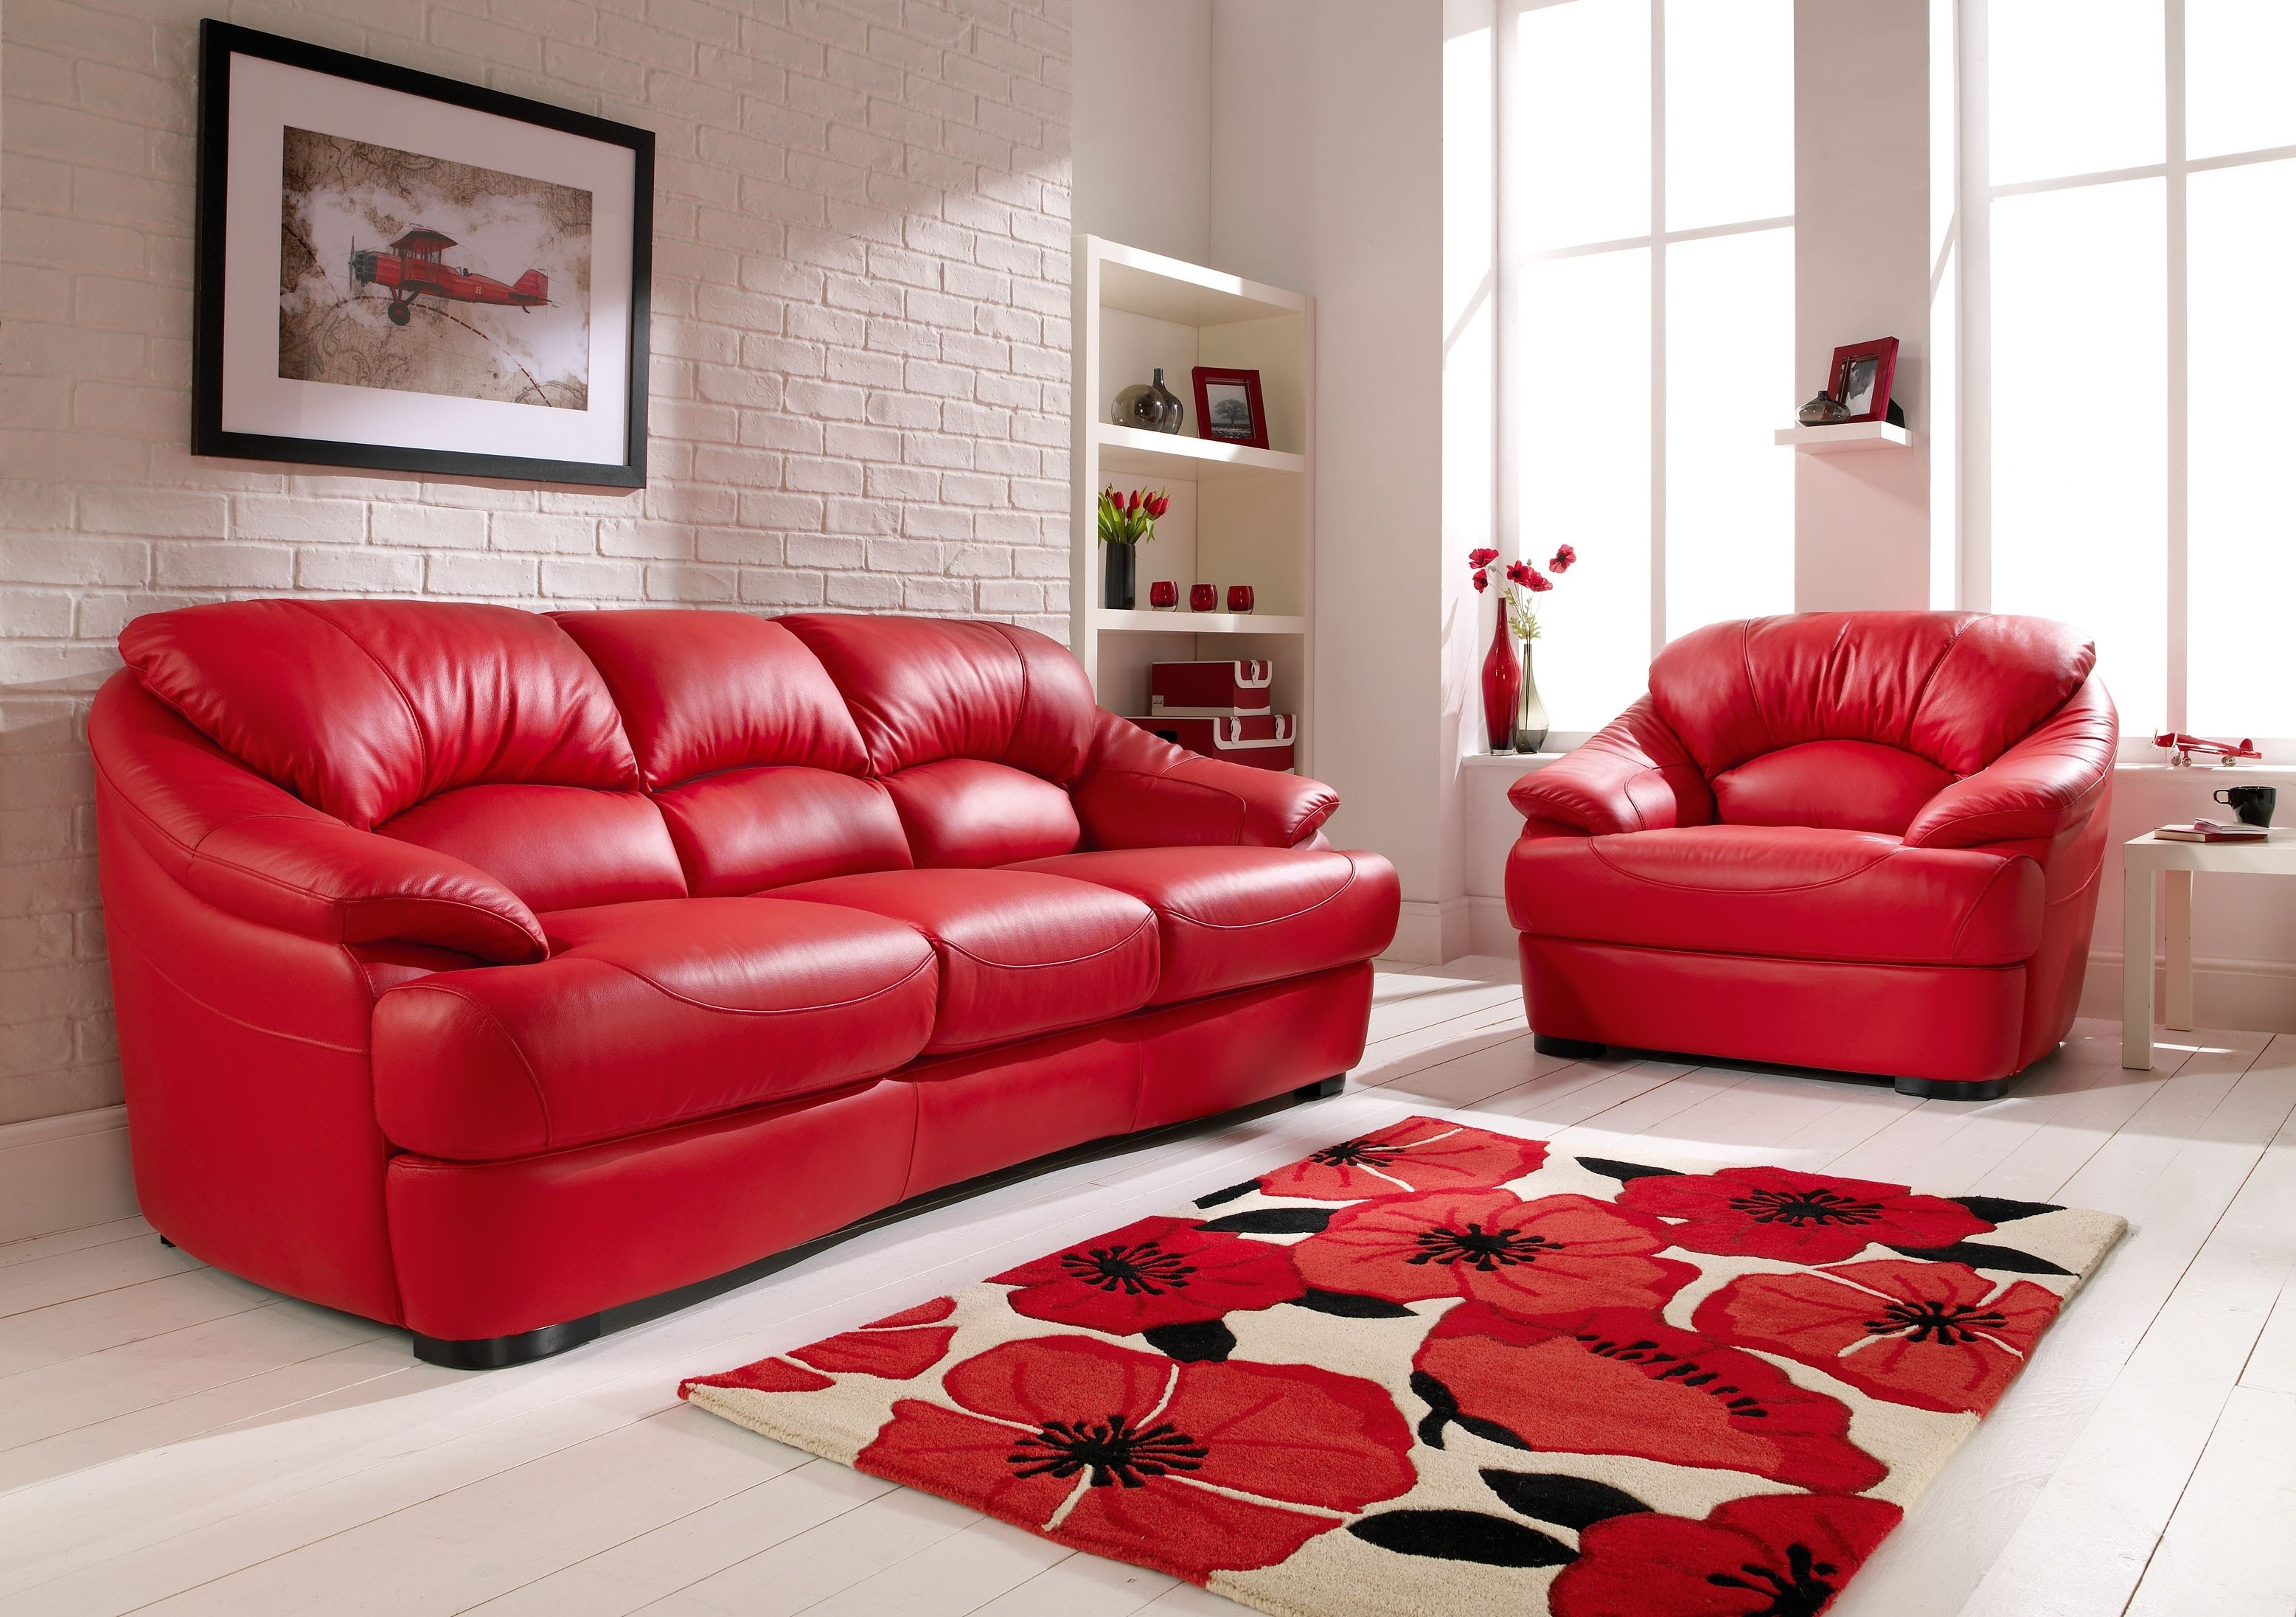 20 photos red leather couches and loveseats